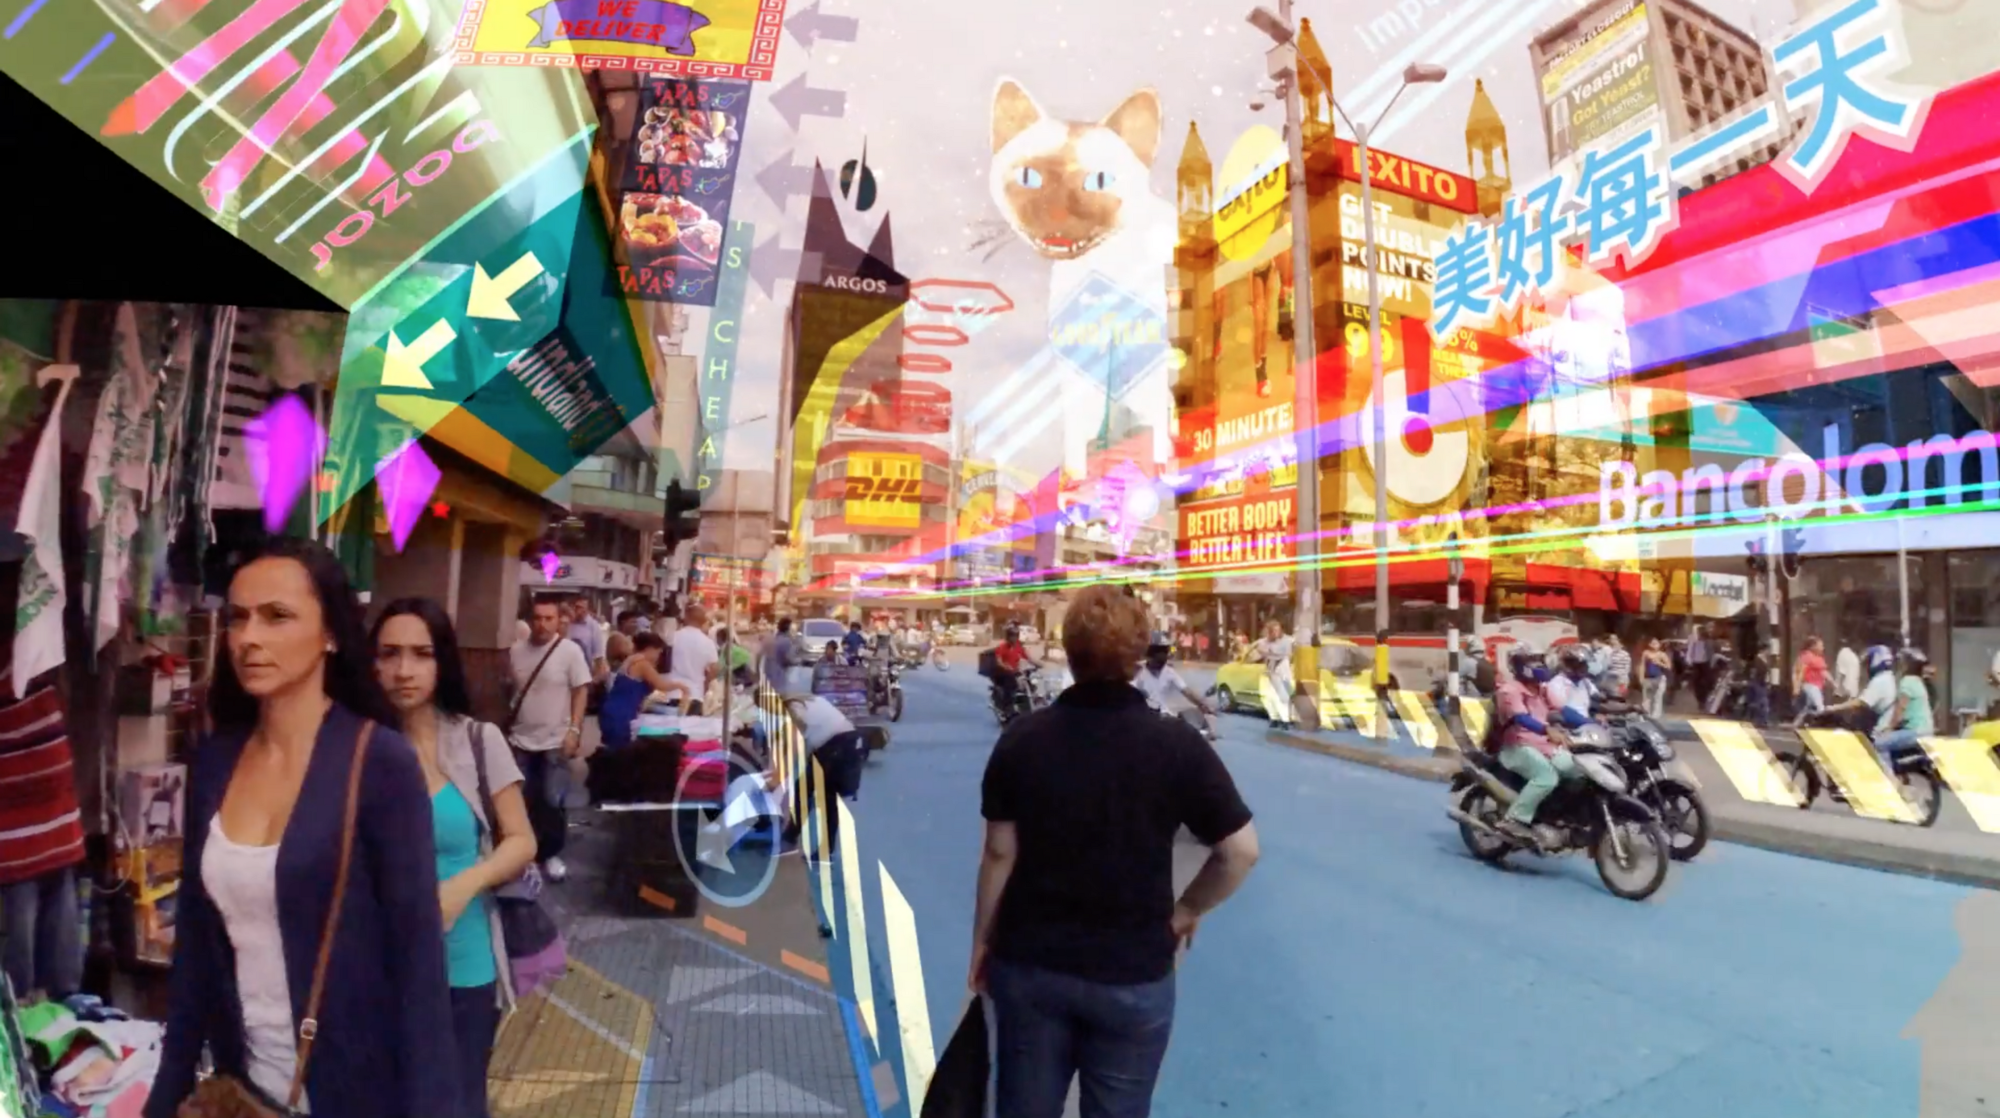 hyper reality Keiichi matsuda has released a short movie depicting a futuristic scenario where digital media and the physical world have merged to create a hyper reality.